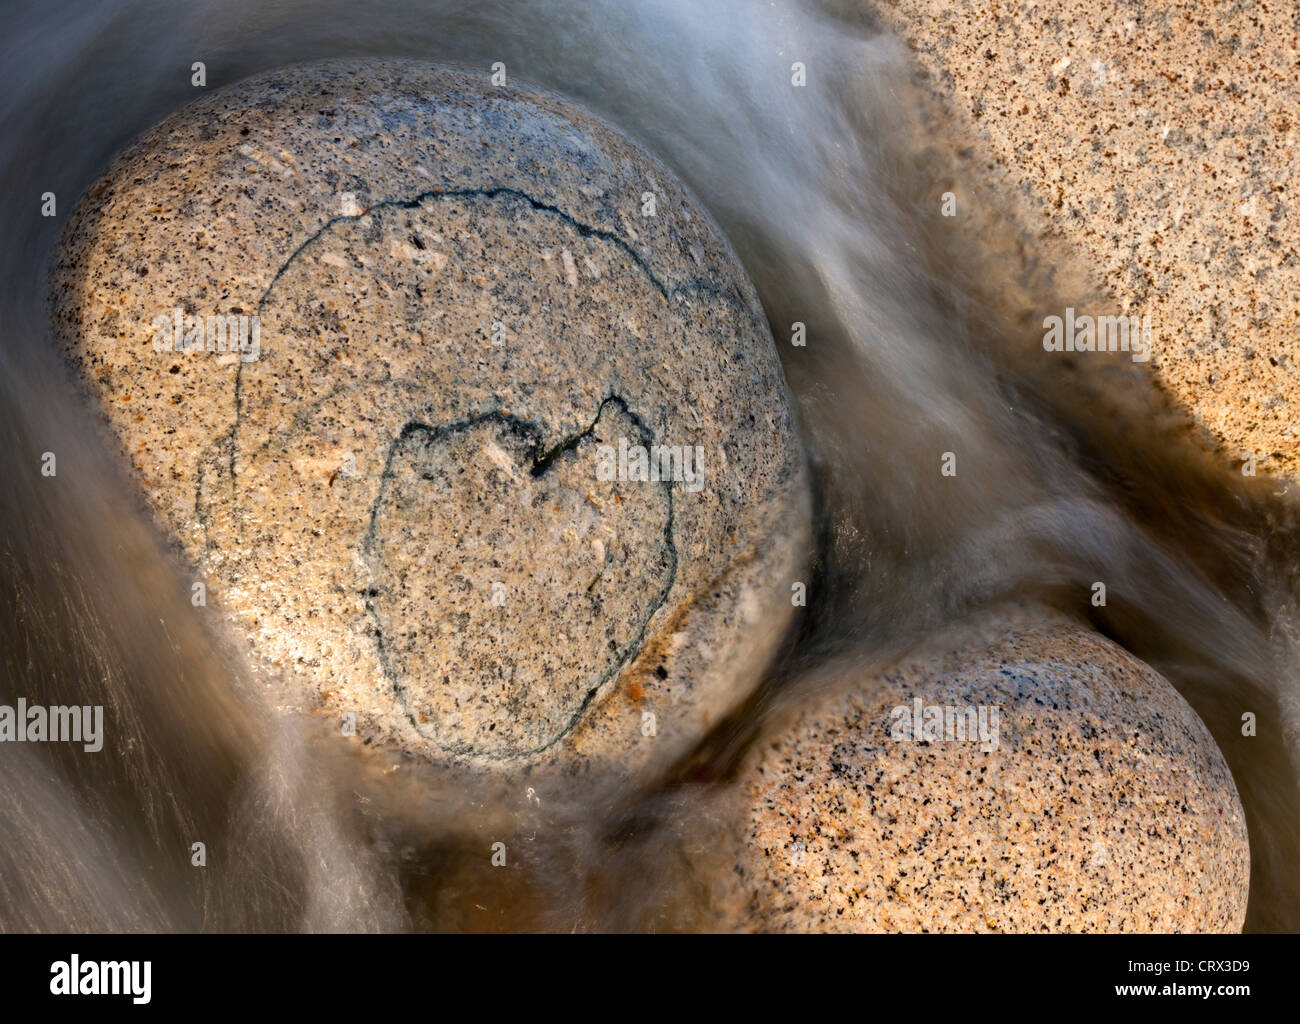 Heart shaped pattern on a circular granite boulder, Porth Nanven, Cornwall, England. Spring (April) 2012. - Stock Image